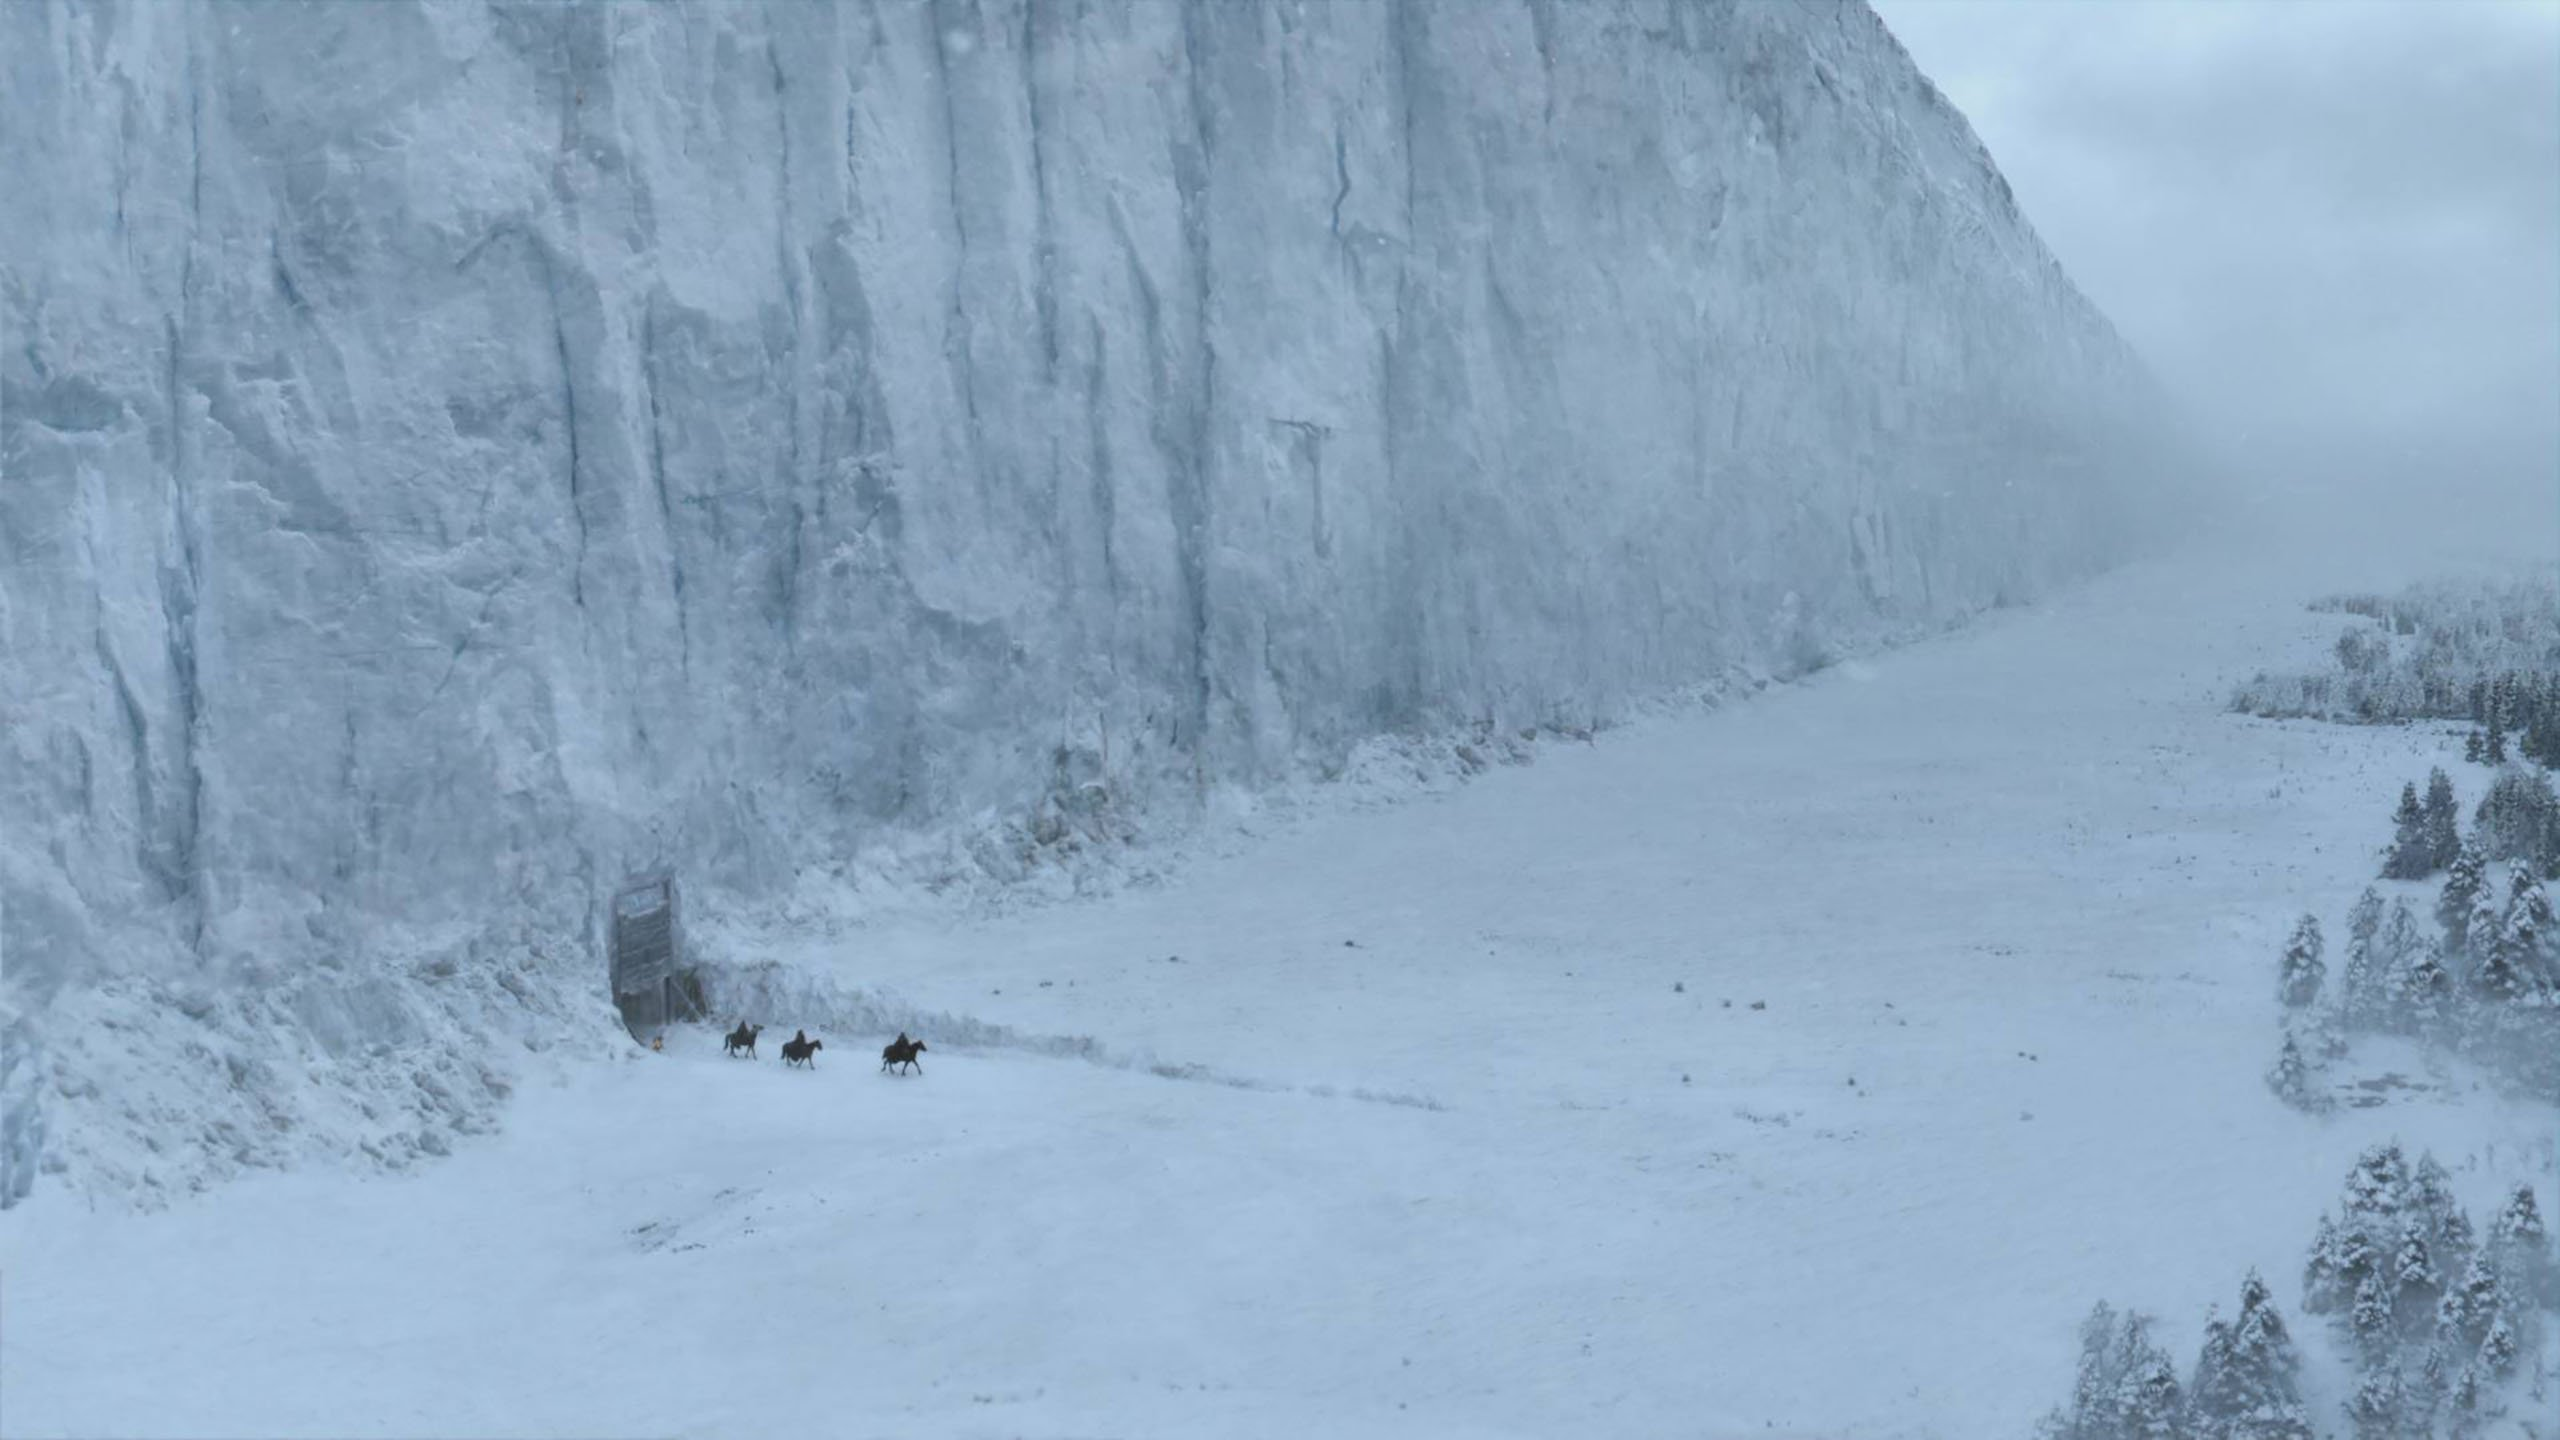 Game of Thrones The Wall of Ice